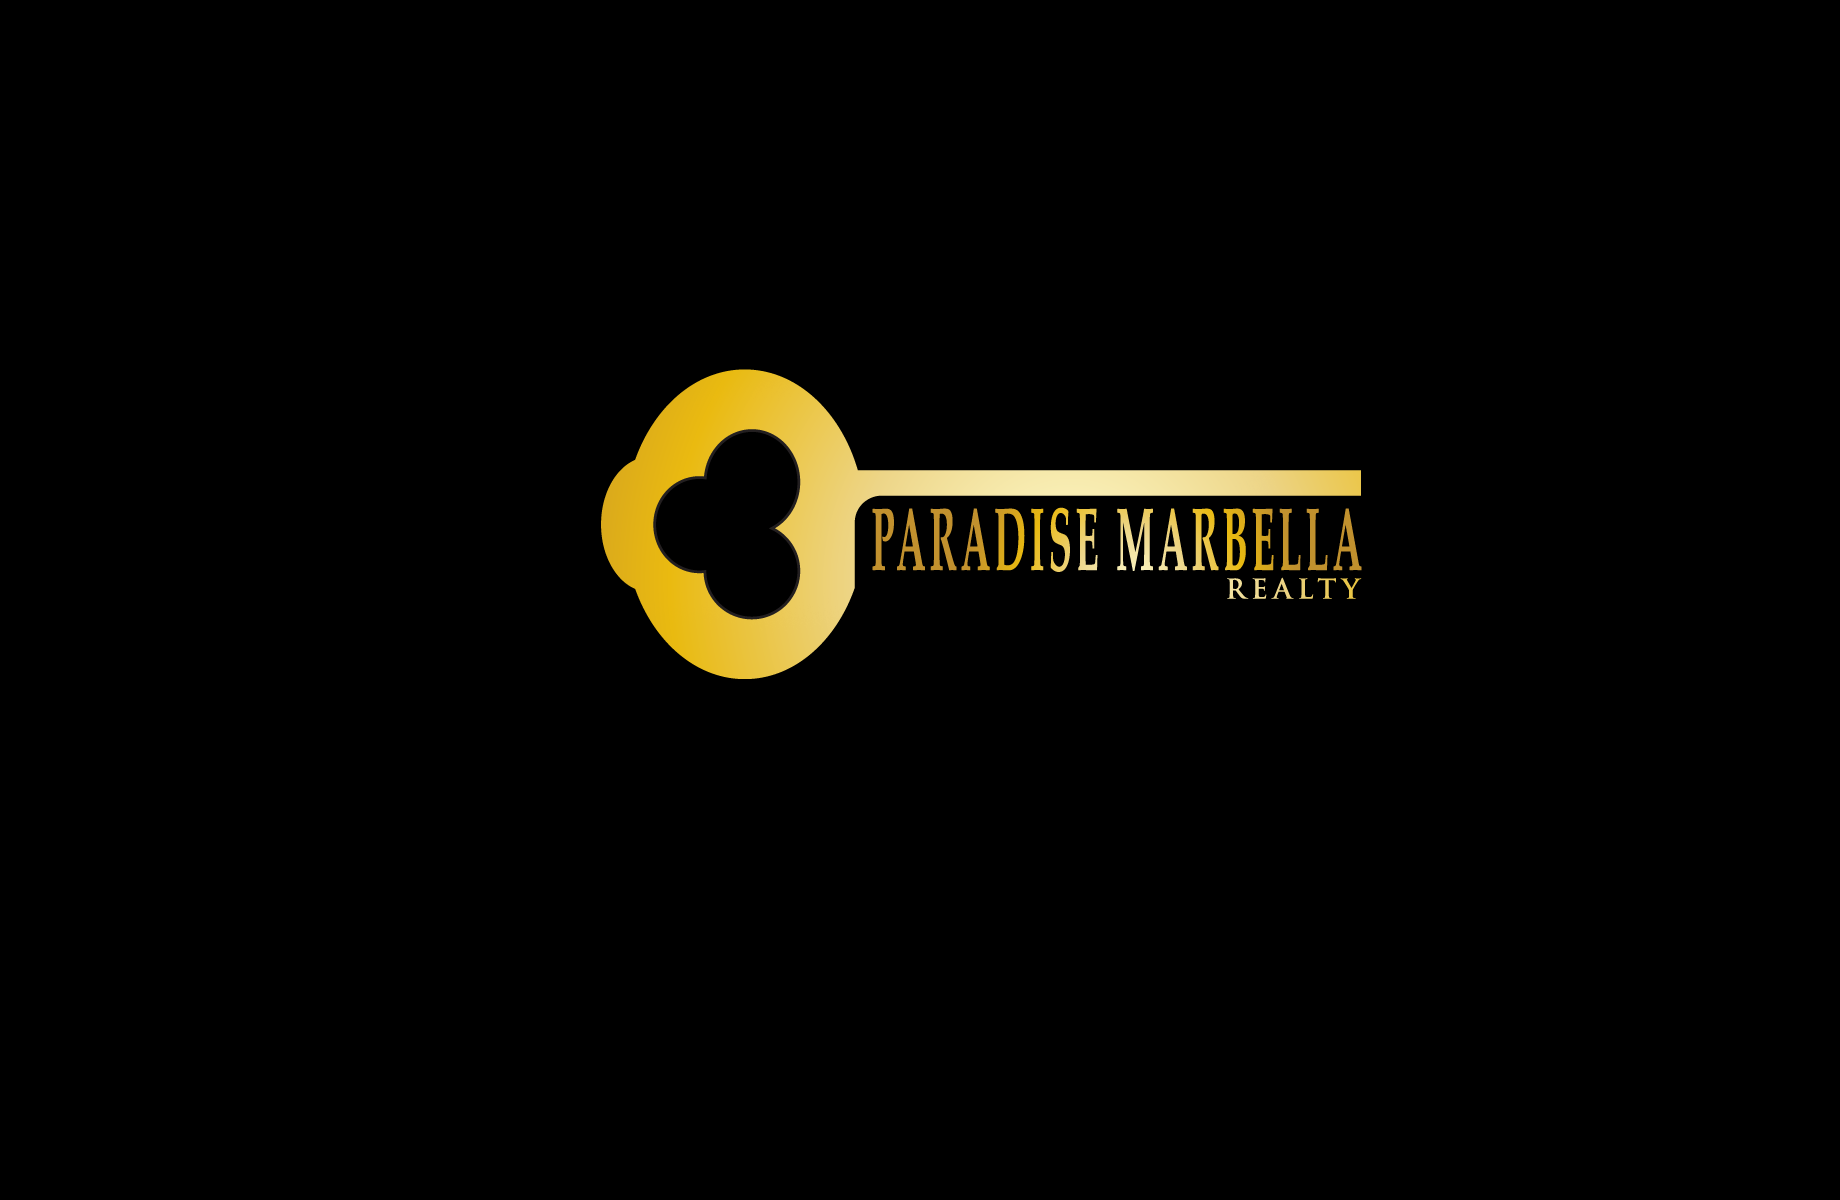 Logo Design by Jan Chua - Entry No. 113 in the Logo Design Contest Captivating Logo Design for Paradise Marbella Realty.